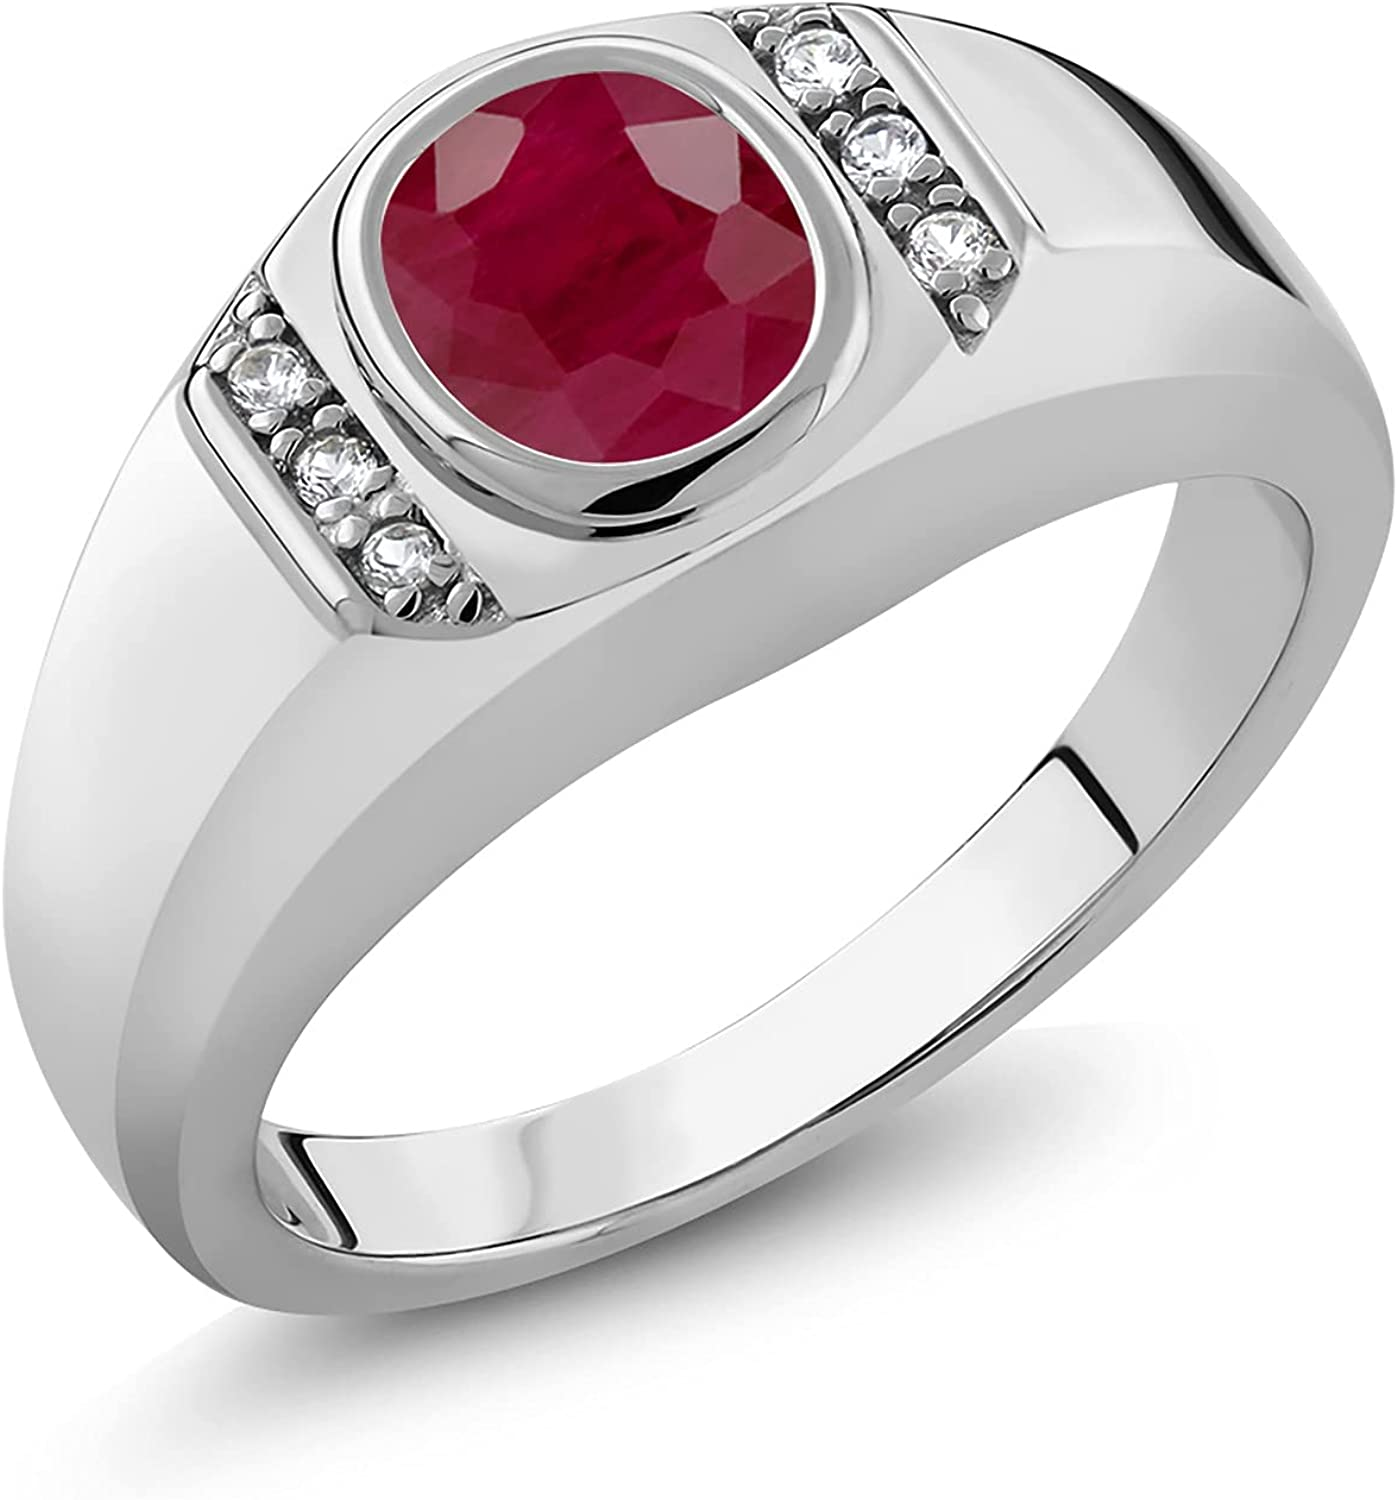 Gem Stone King 送料無料激安祭 1.66 Ct Oval White Created Ruby 925 Red 店舗 Sapphire